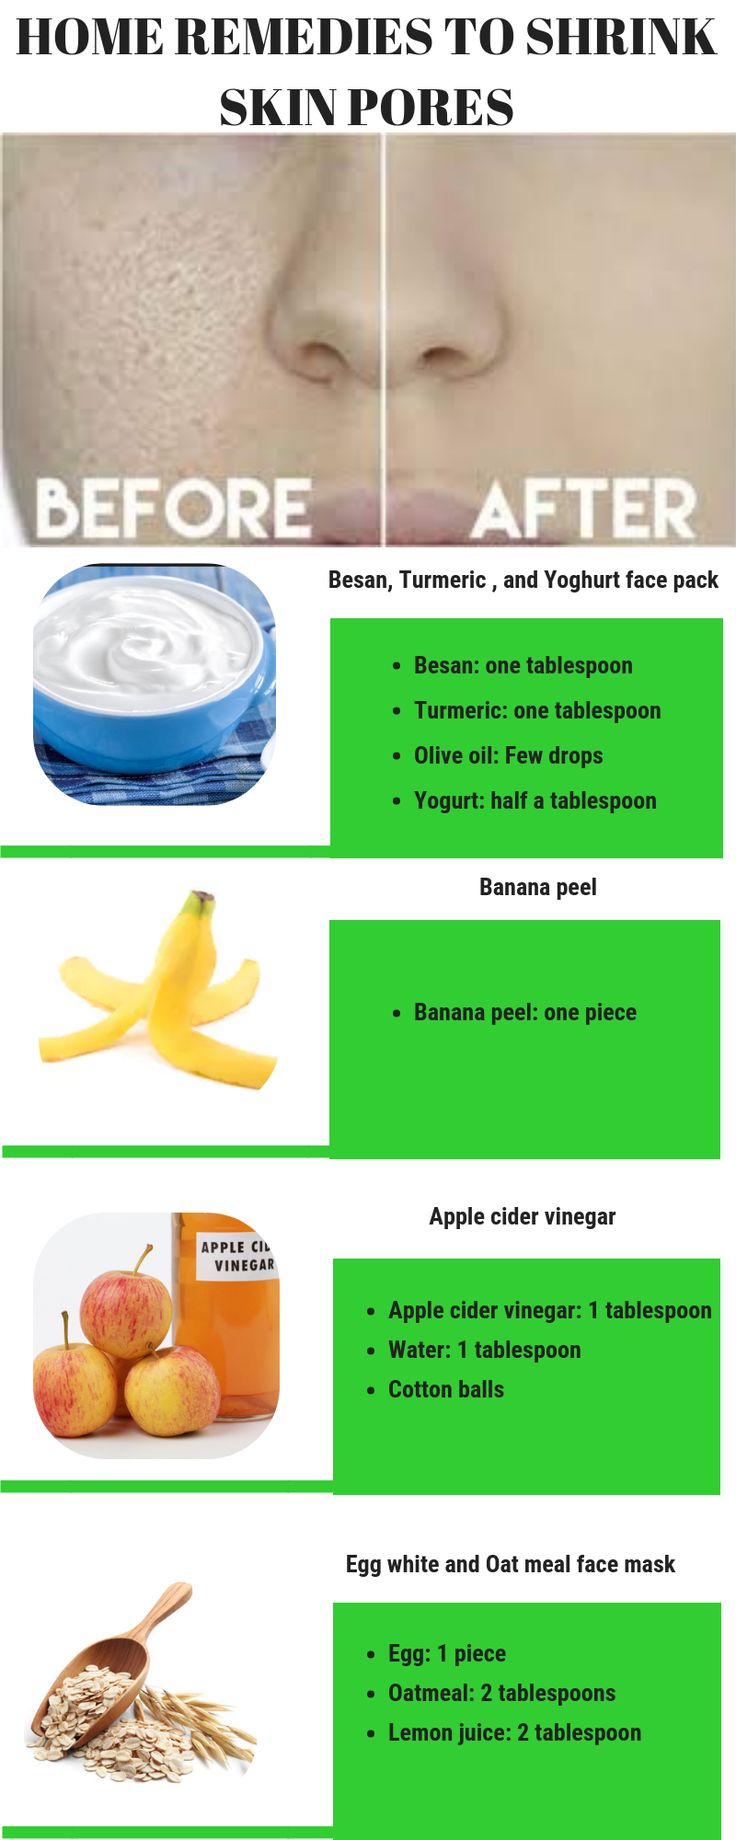 Top 3 home remedies to shrink skin pores